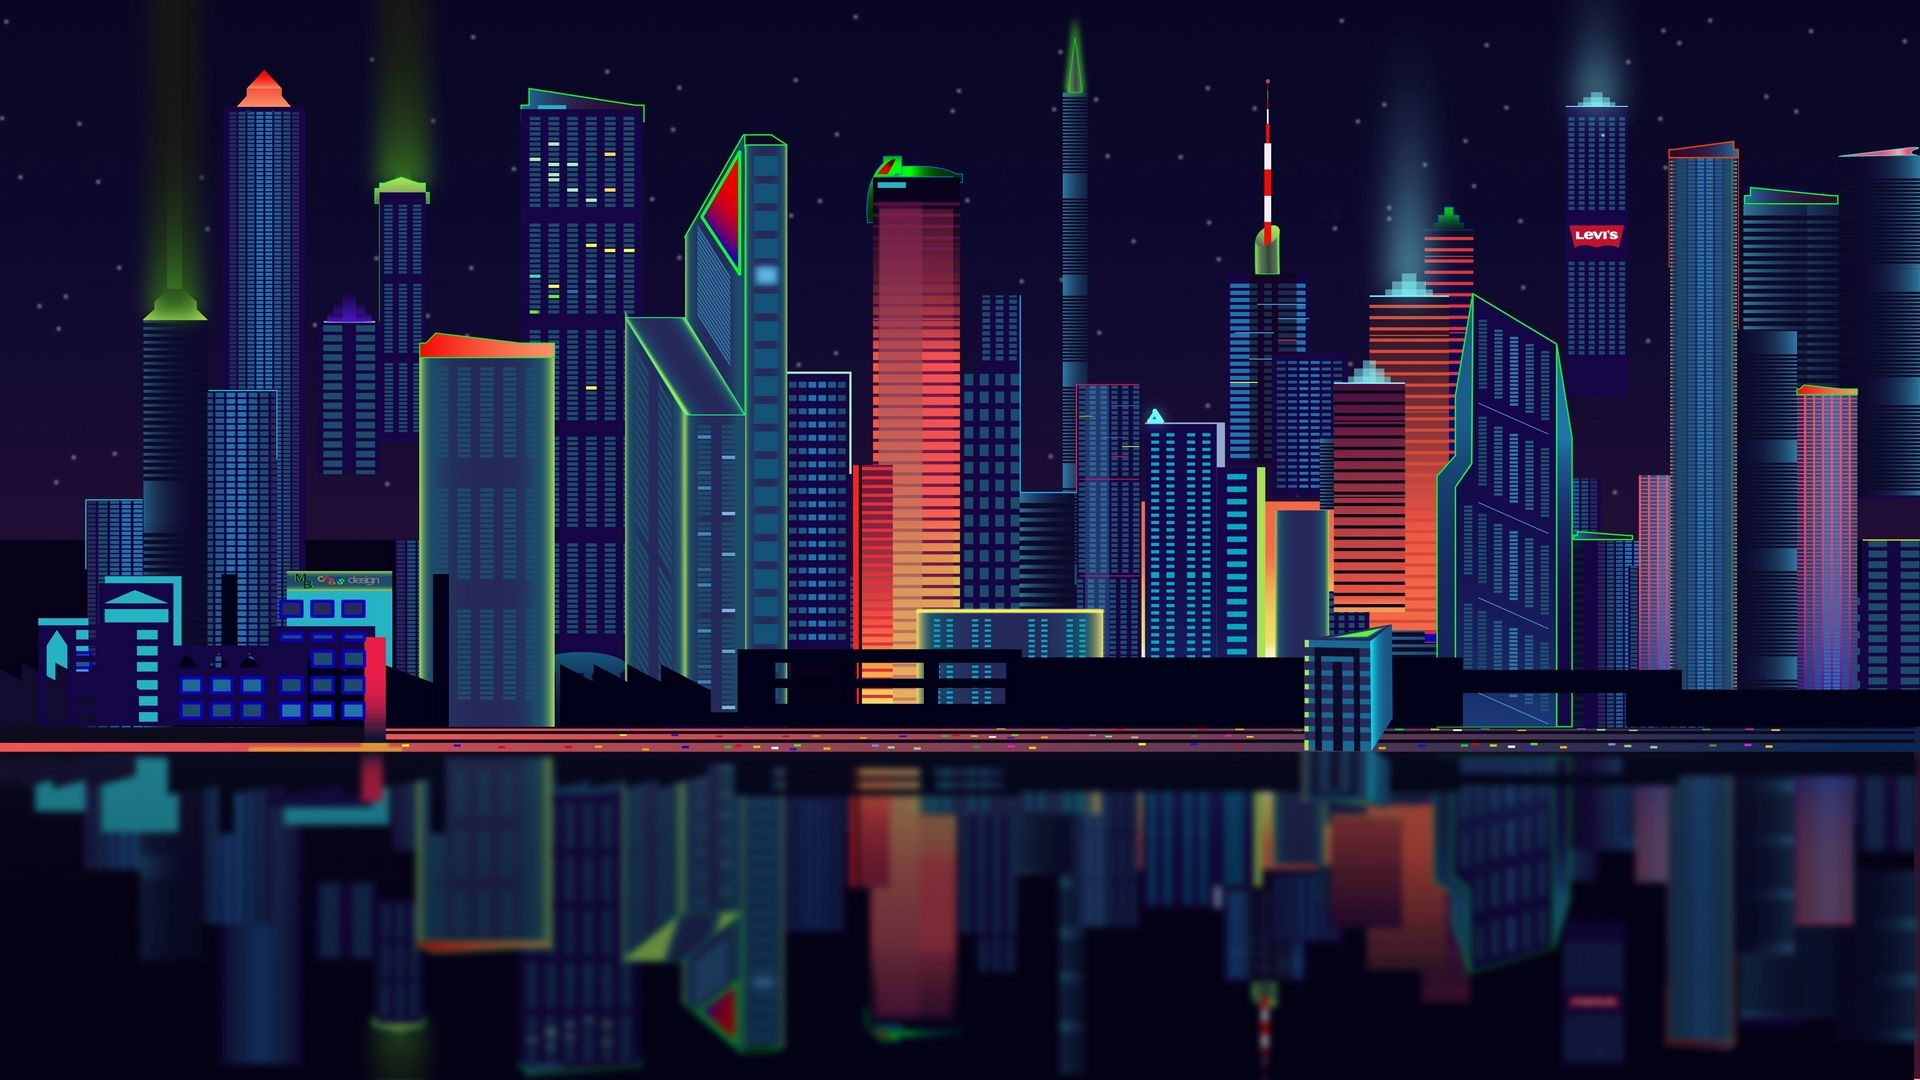 1920x1080 Panorama Vector City 1080p Laptop Full Hd Wallpaper Hd Artist 4k Wallpapers Images Photos And Background Wallpapers Den